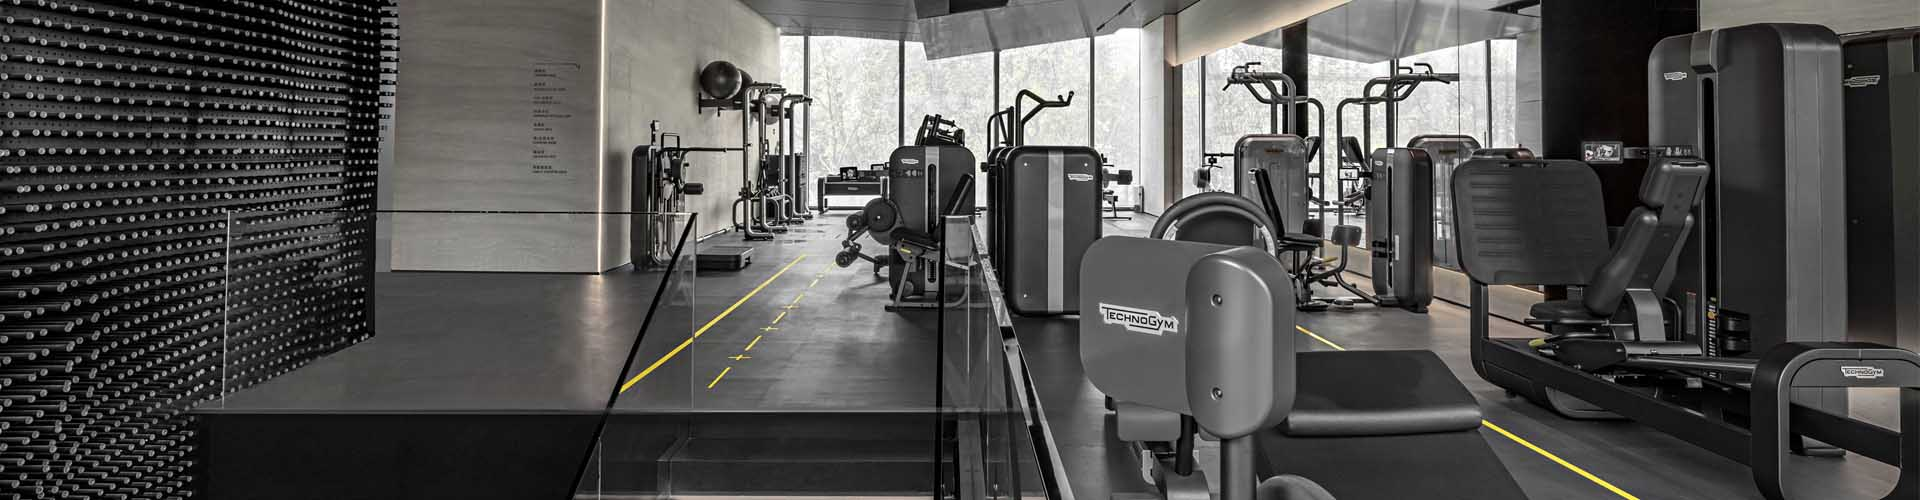 Fusion and Technogym: the avanguard of fitness design